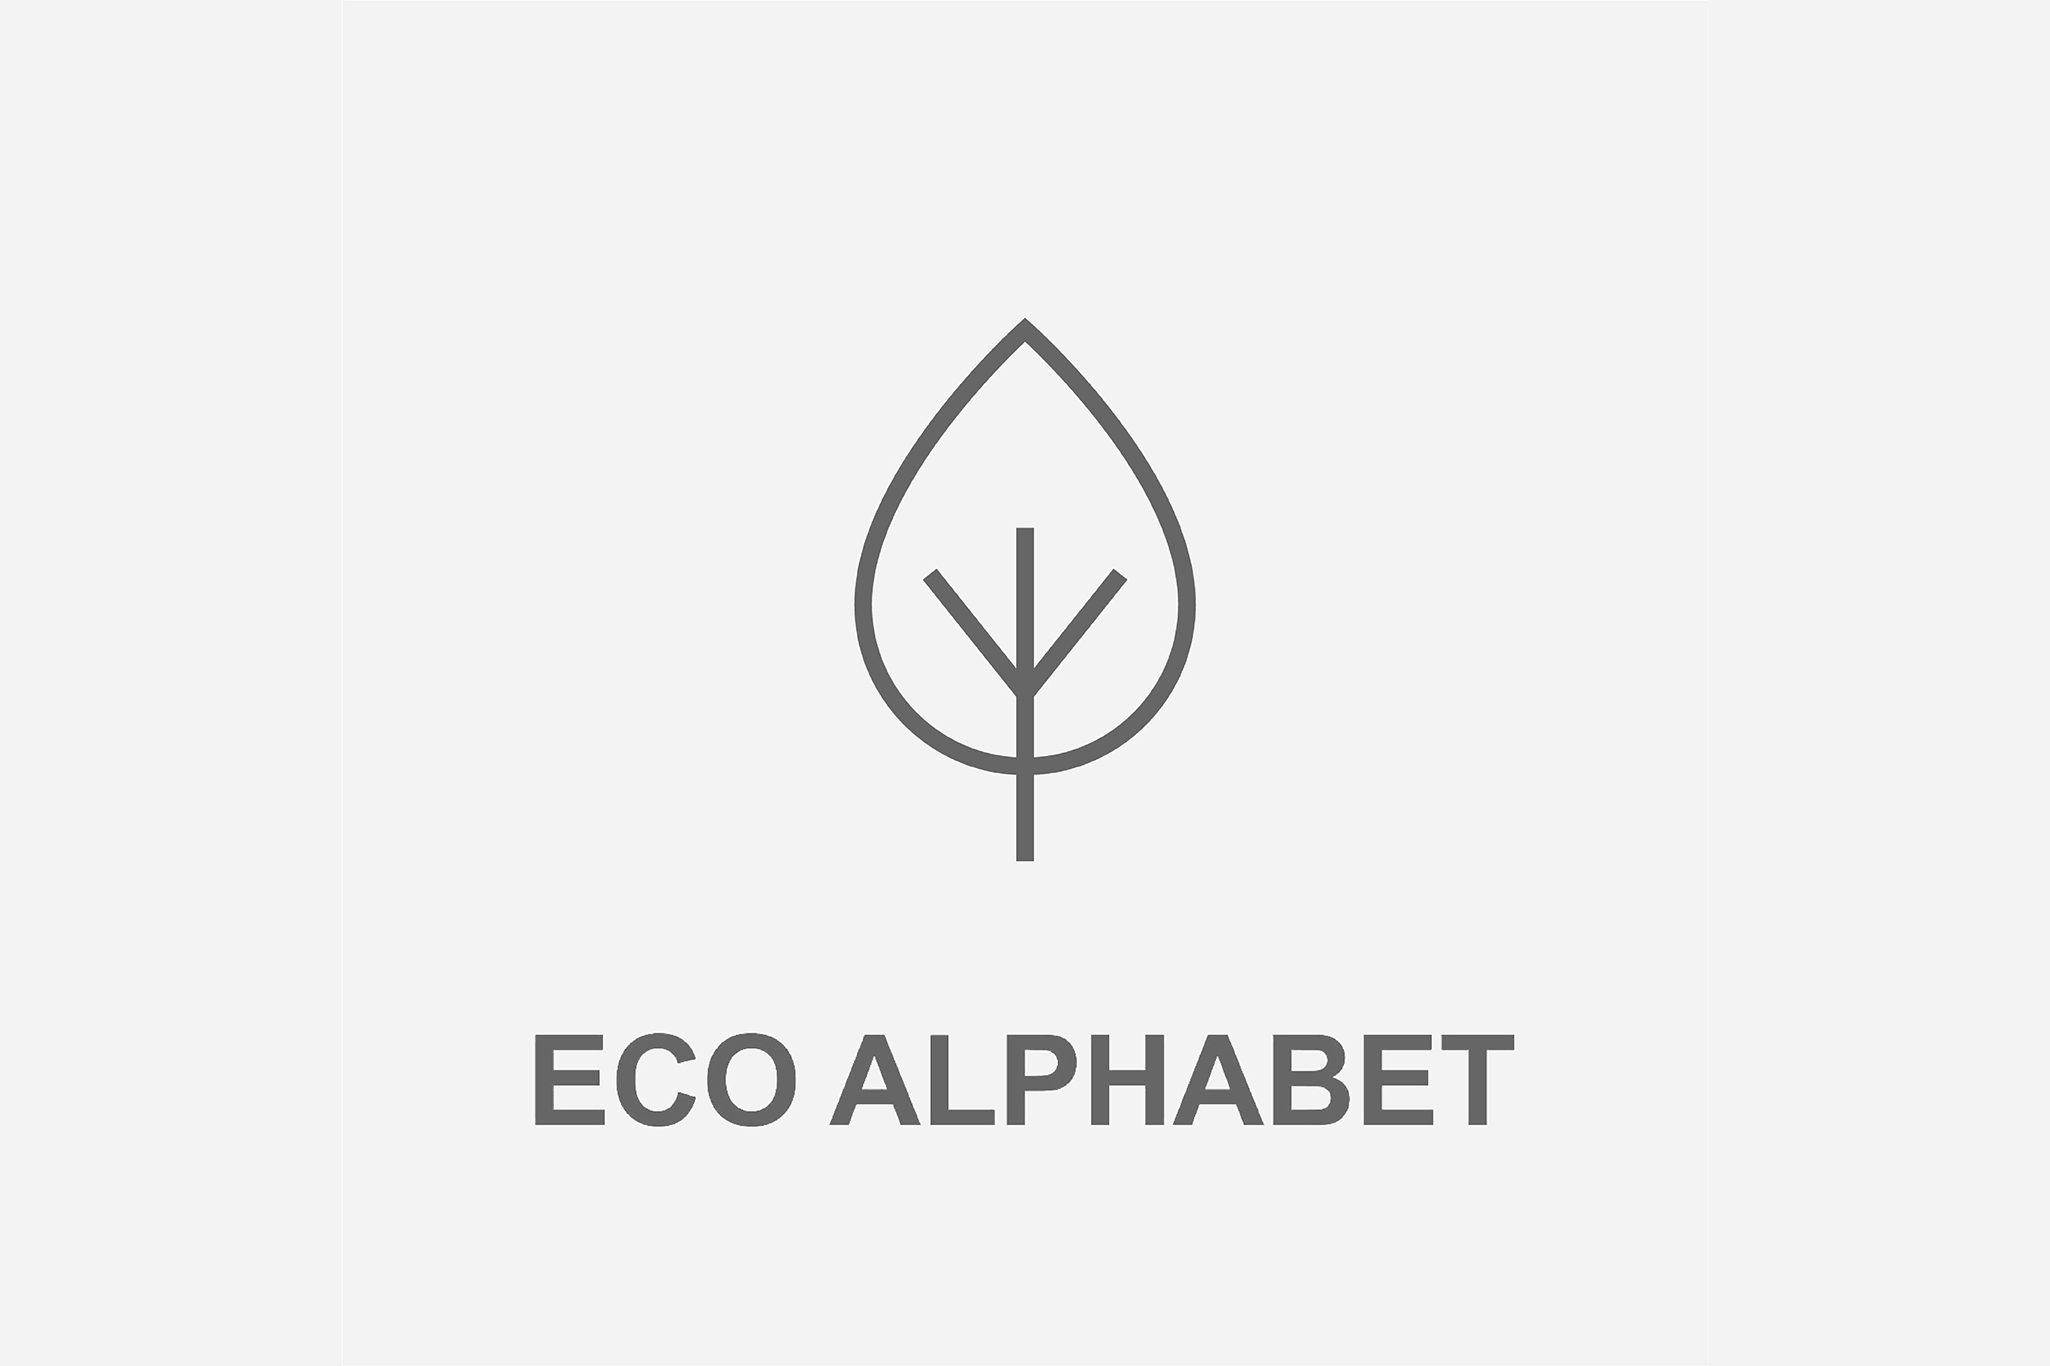 Eco Alphabet Icon Design